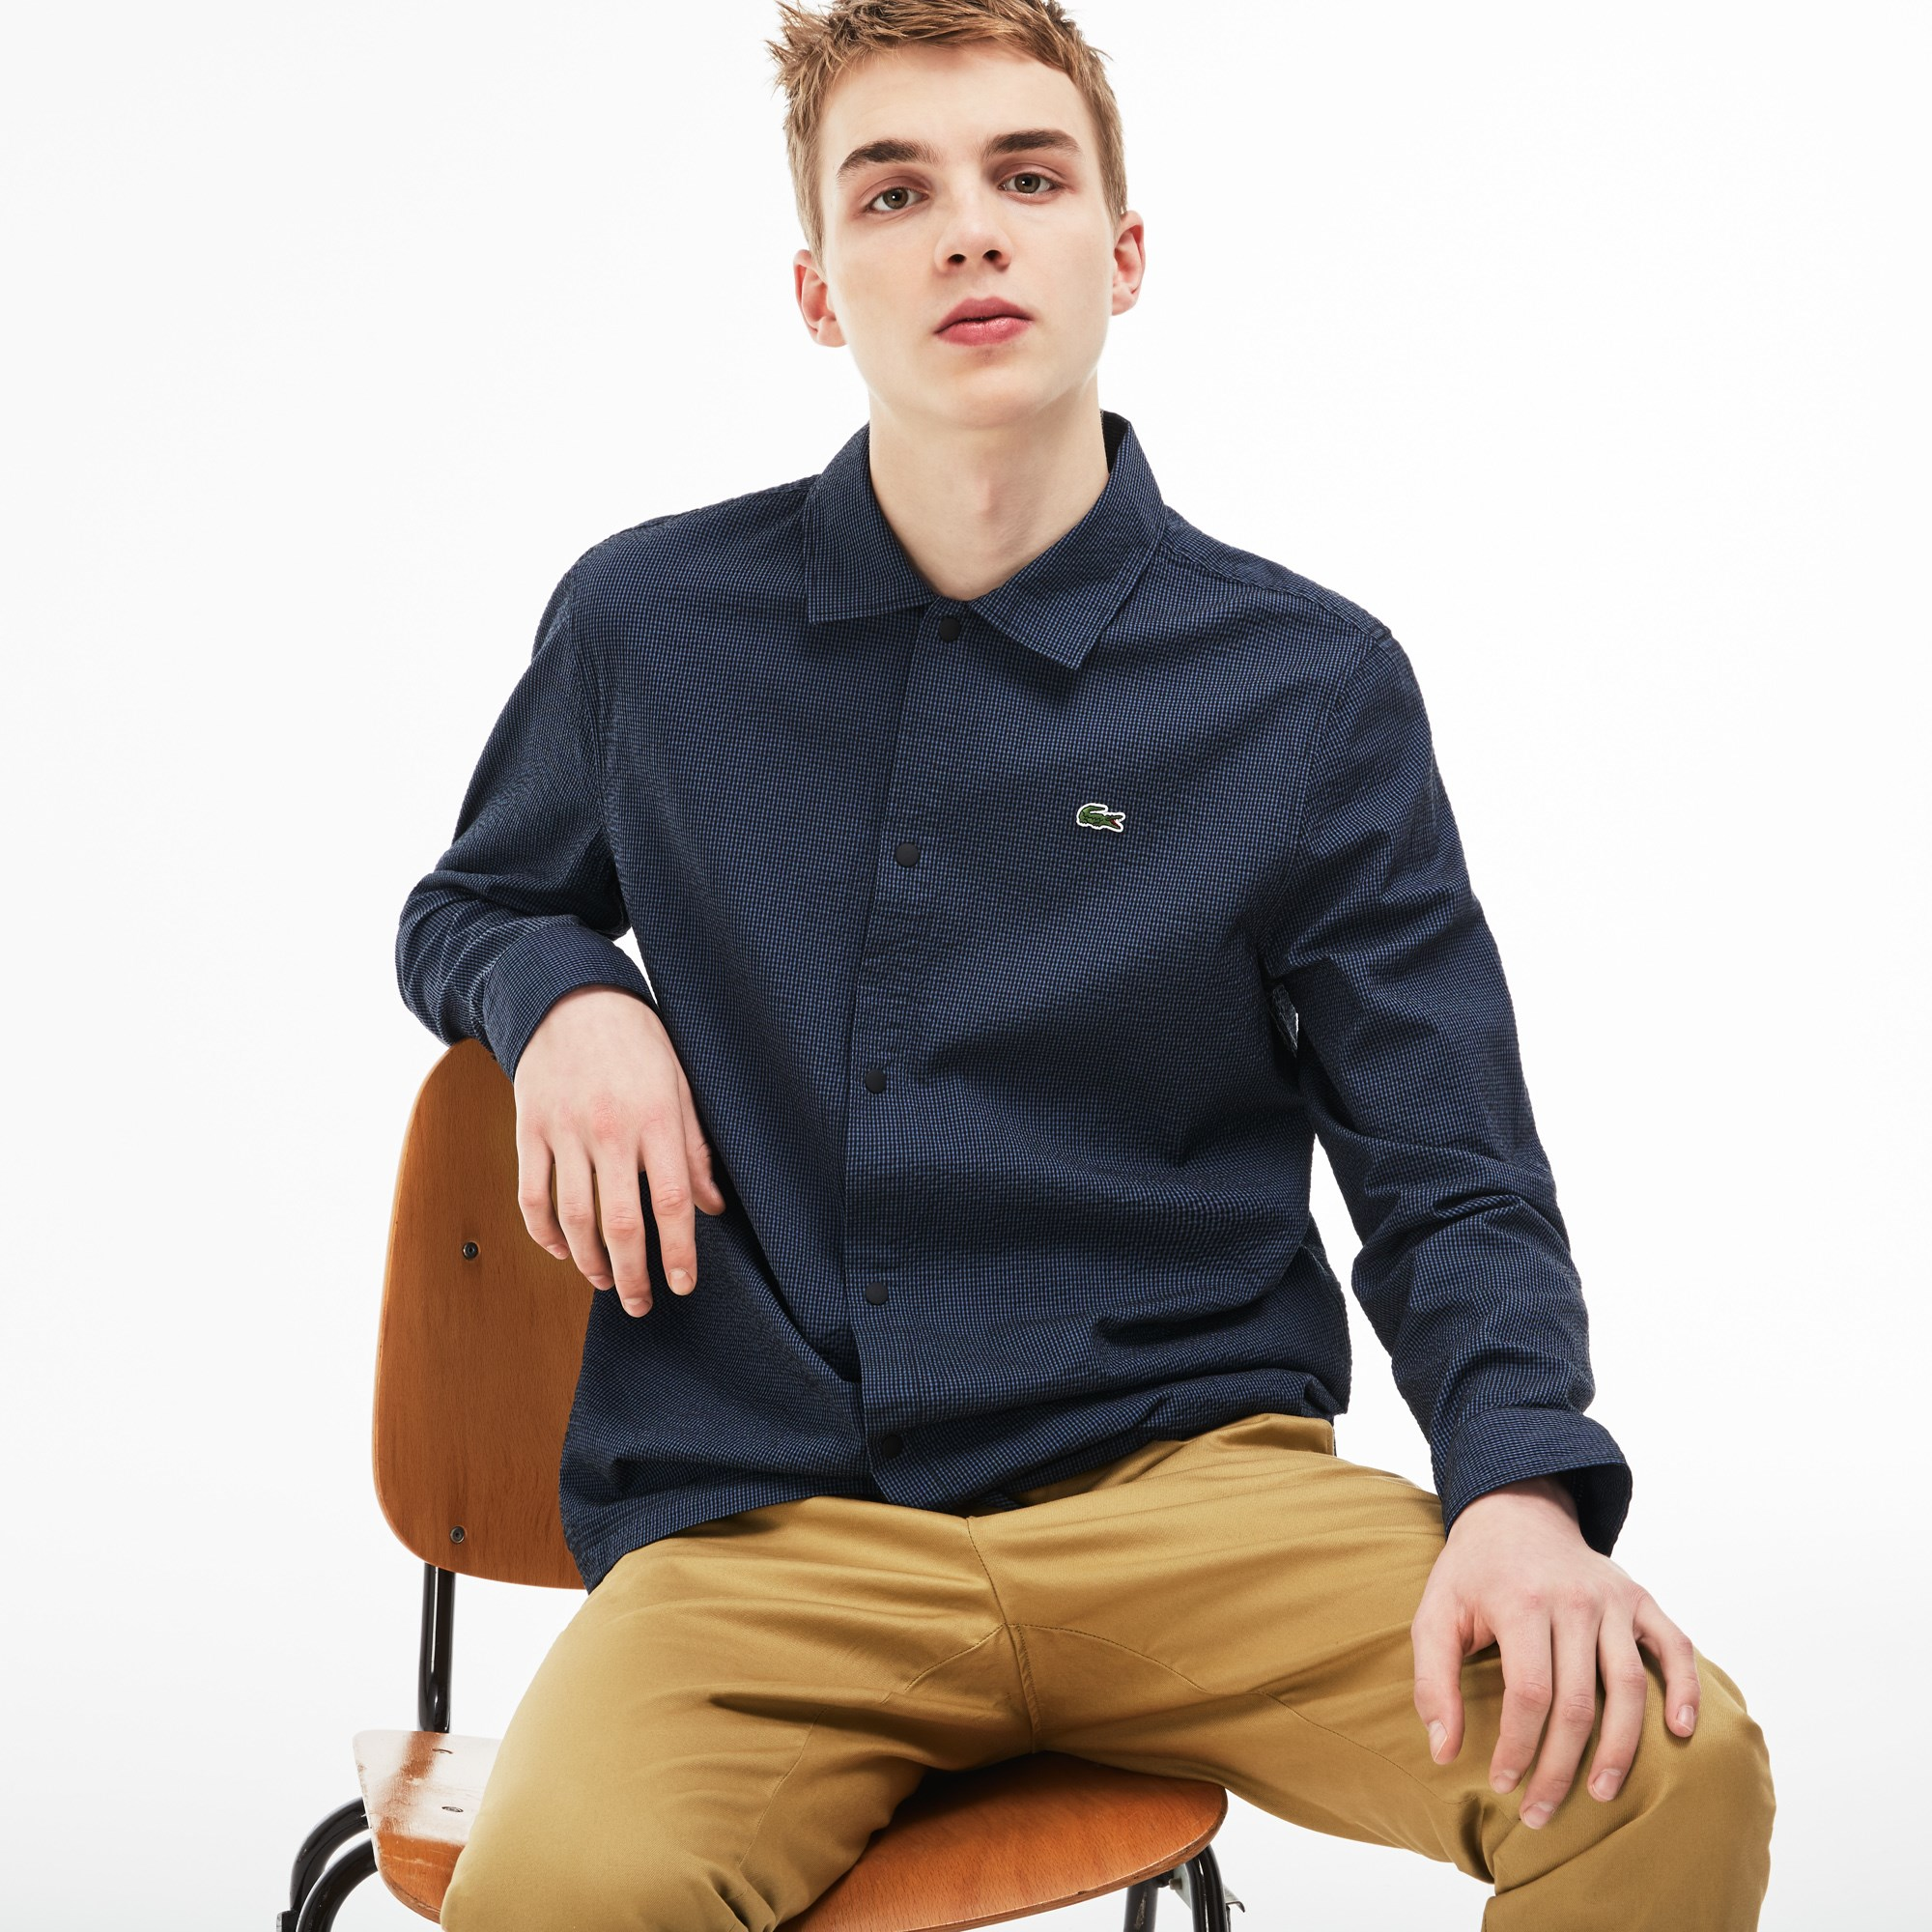 Camisa Hombre Cuadros Vichy Skinny Fit Lacoste Live